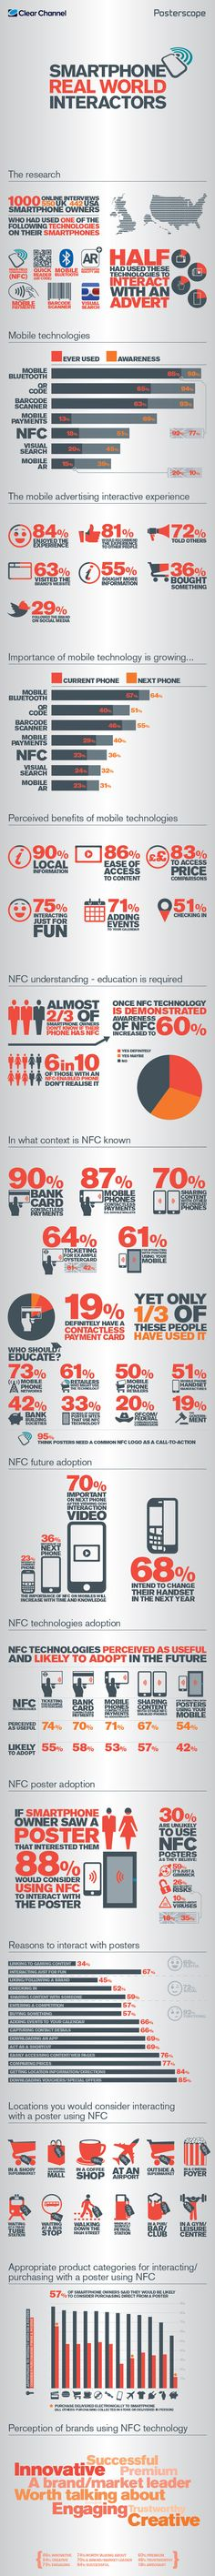 Smart Phone Real World Interactors #infographic